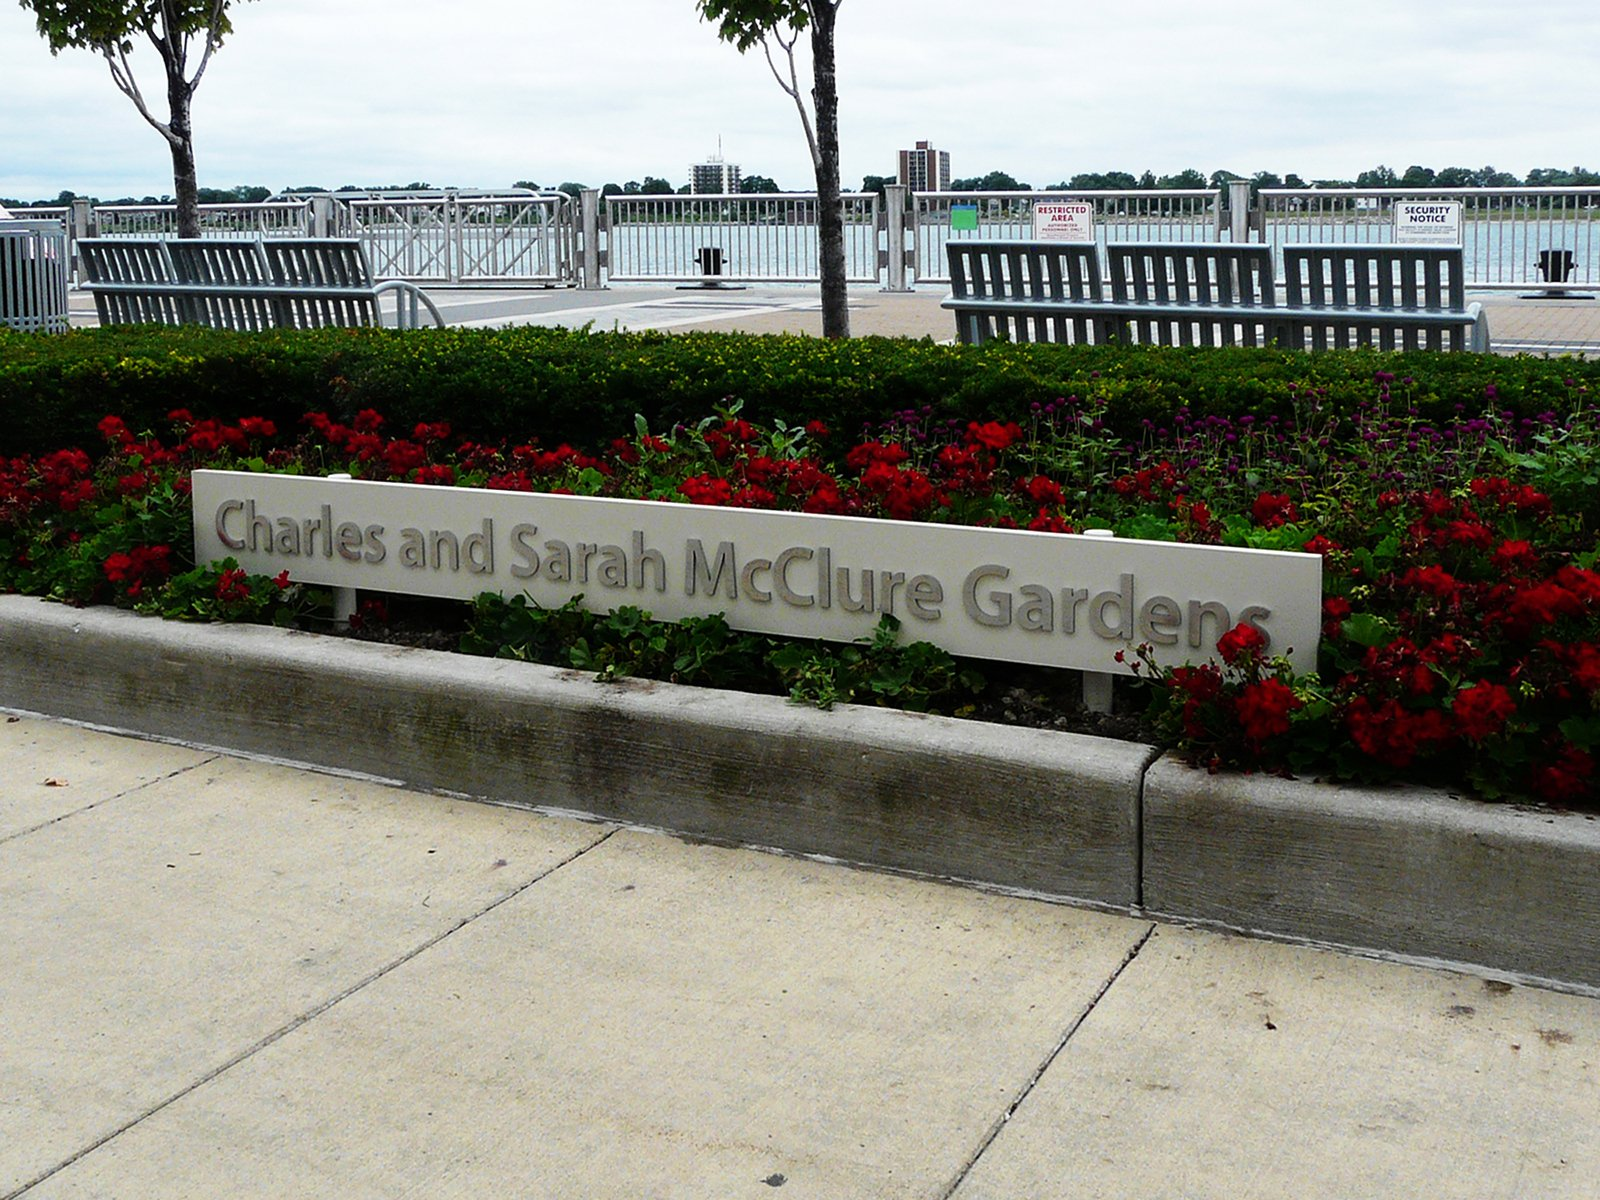 Garden donor recognition: The garden recognition uses the same stainless steel for the individual letters.